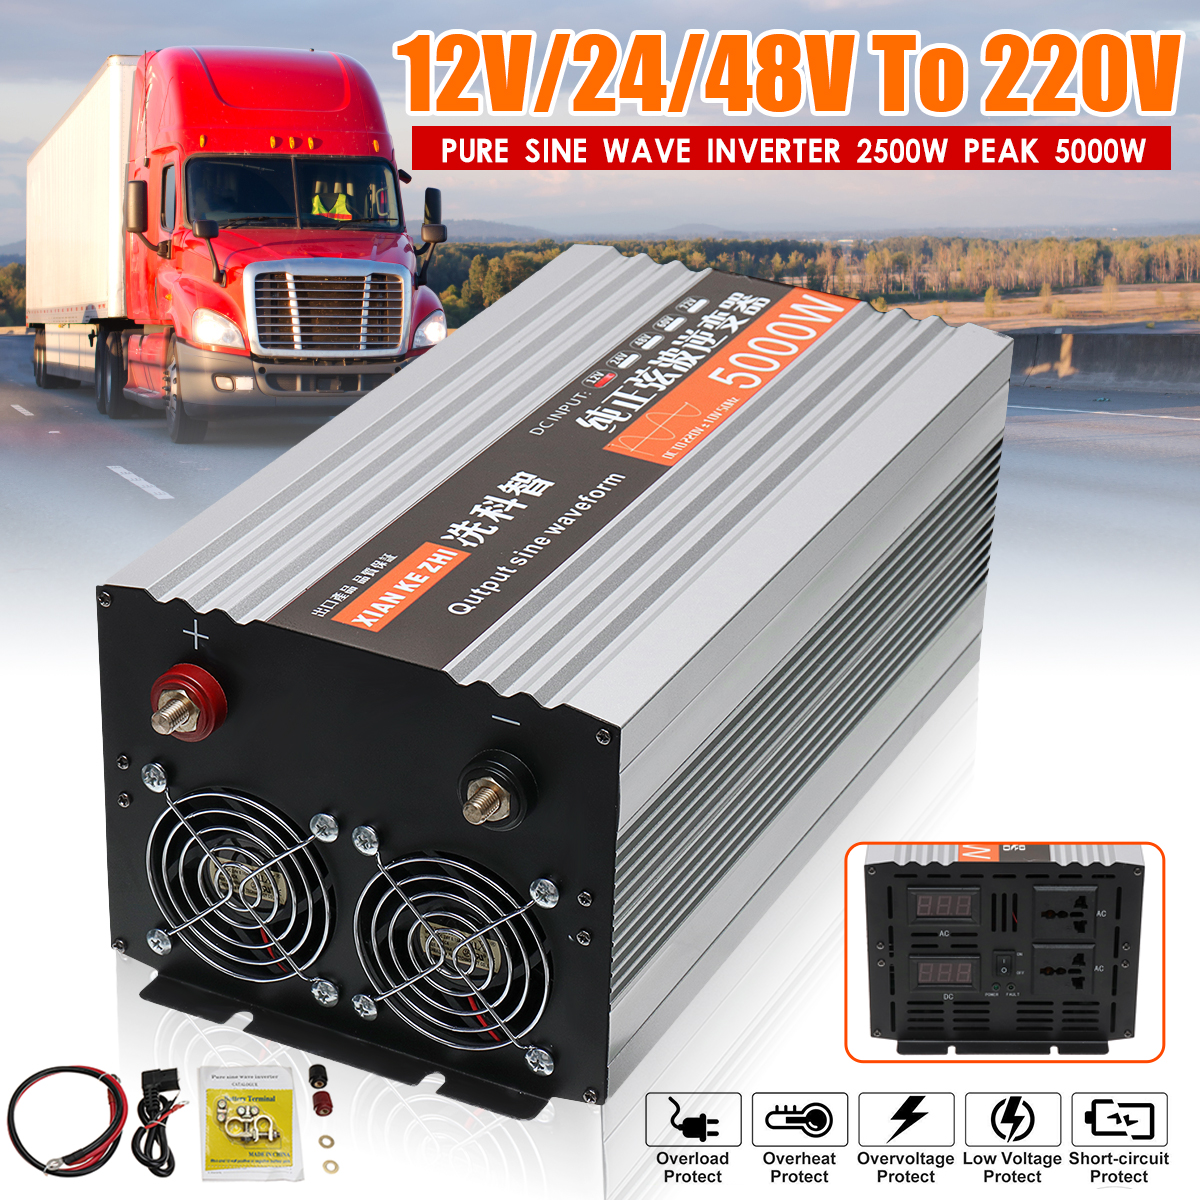 <font><b>Inverter</b></font> 12V <font><b>220V</b></font> 5000W Power Rein Sinus Solar Power <font><b>Inverter</b></font> Reine Sinus Welle Led-anzeige 12 /<font><b>24</b></font>/48/V DC Zu <font><b>220V</b></font> AC Converter image